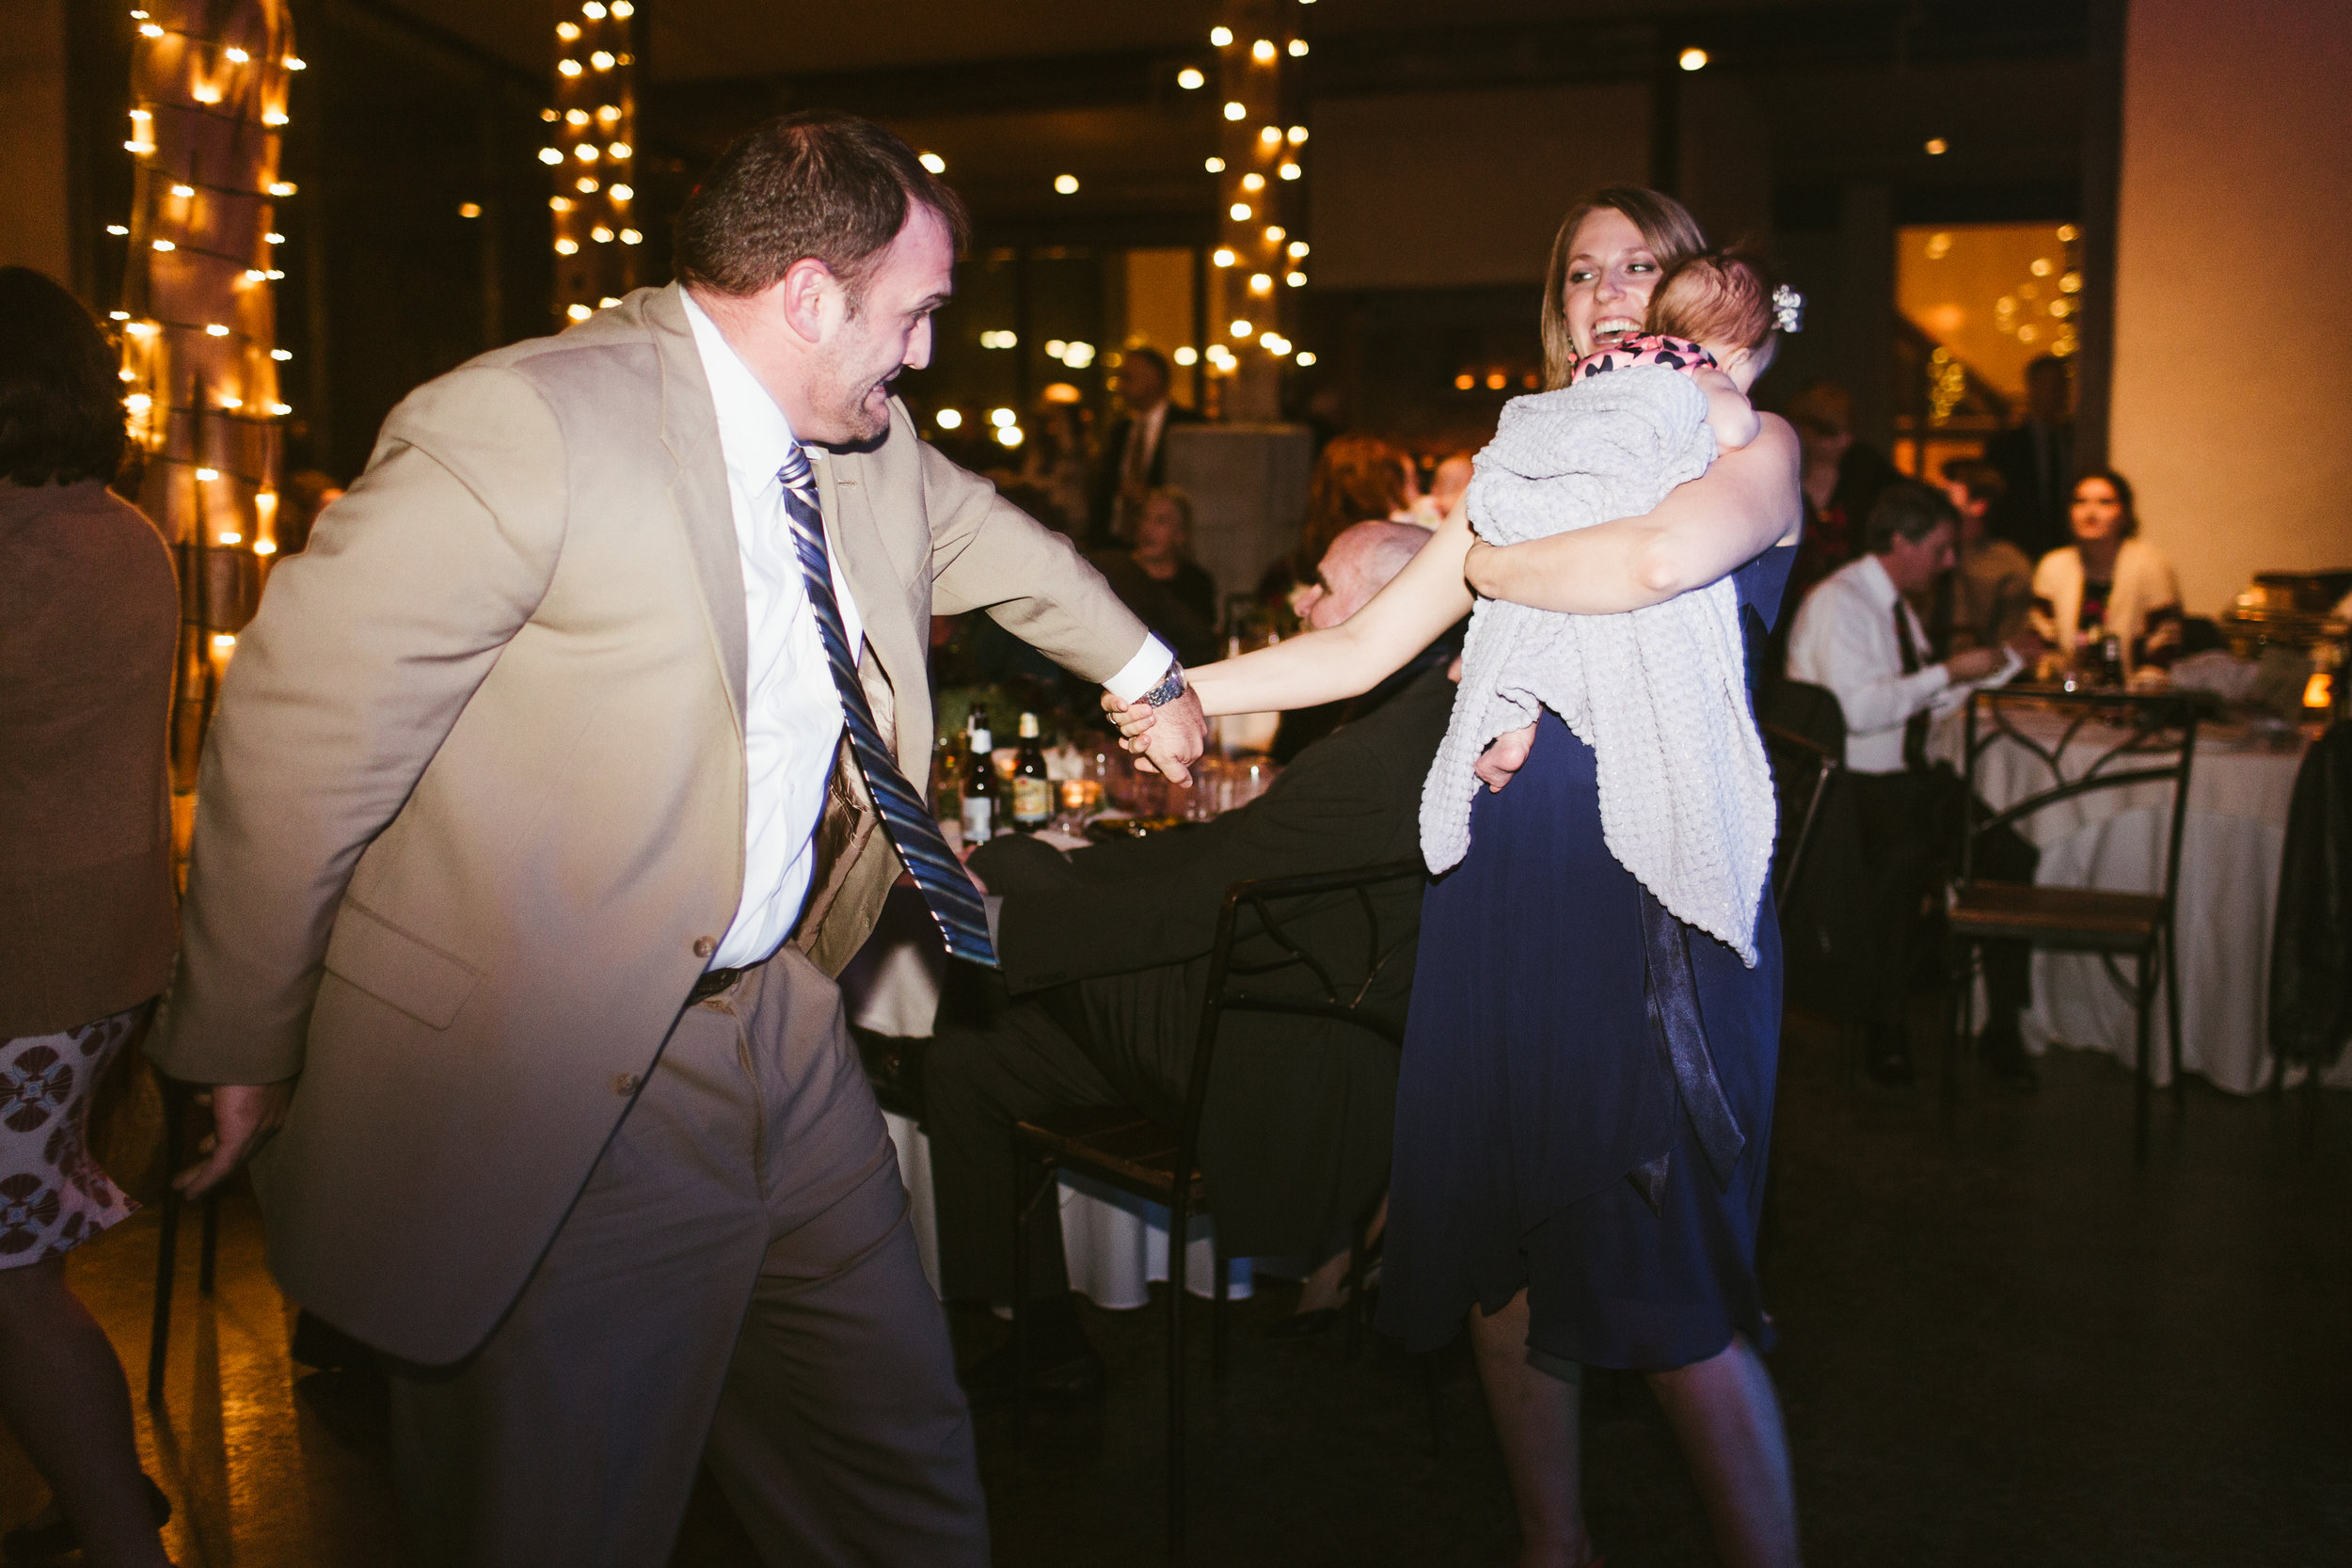 Dancing with an infant: it IS possible.